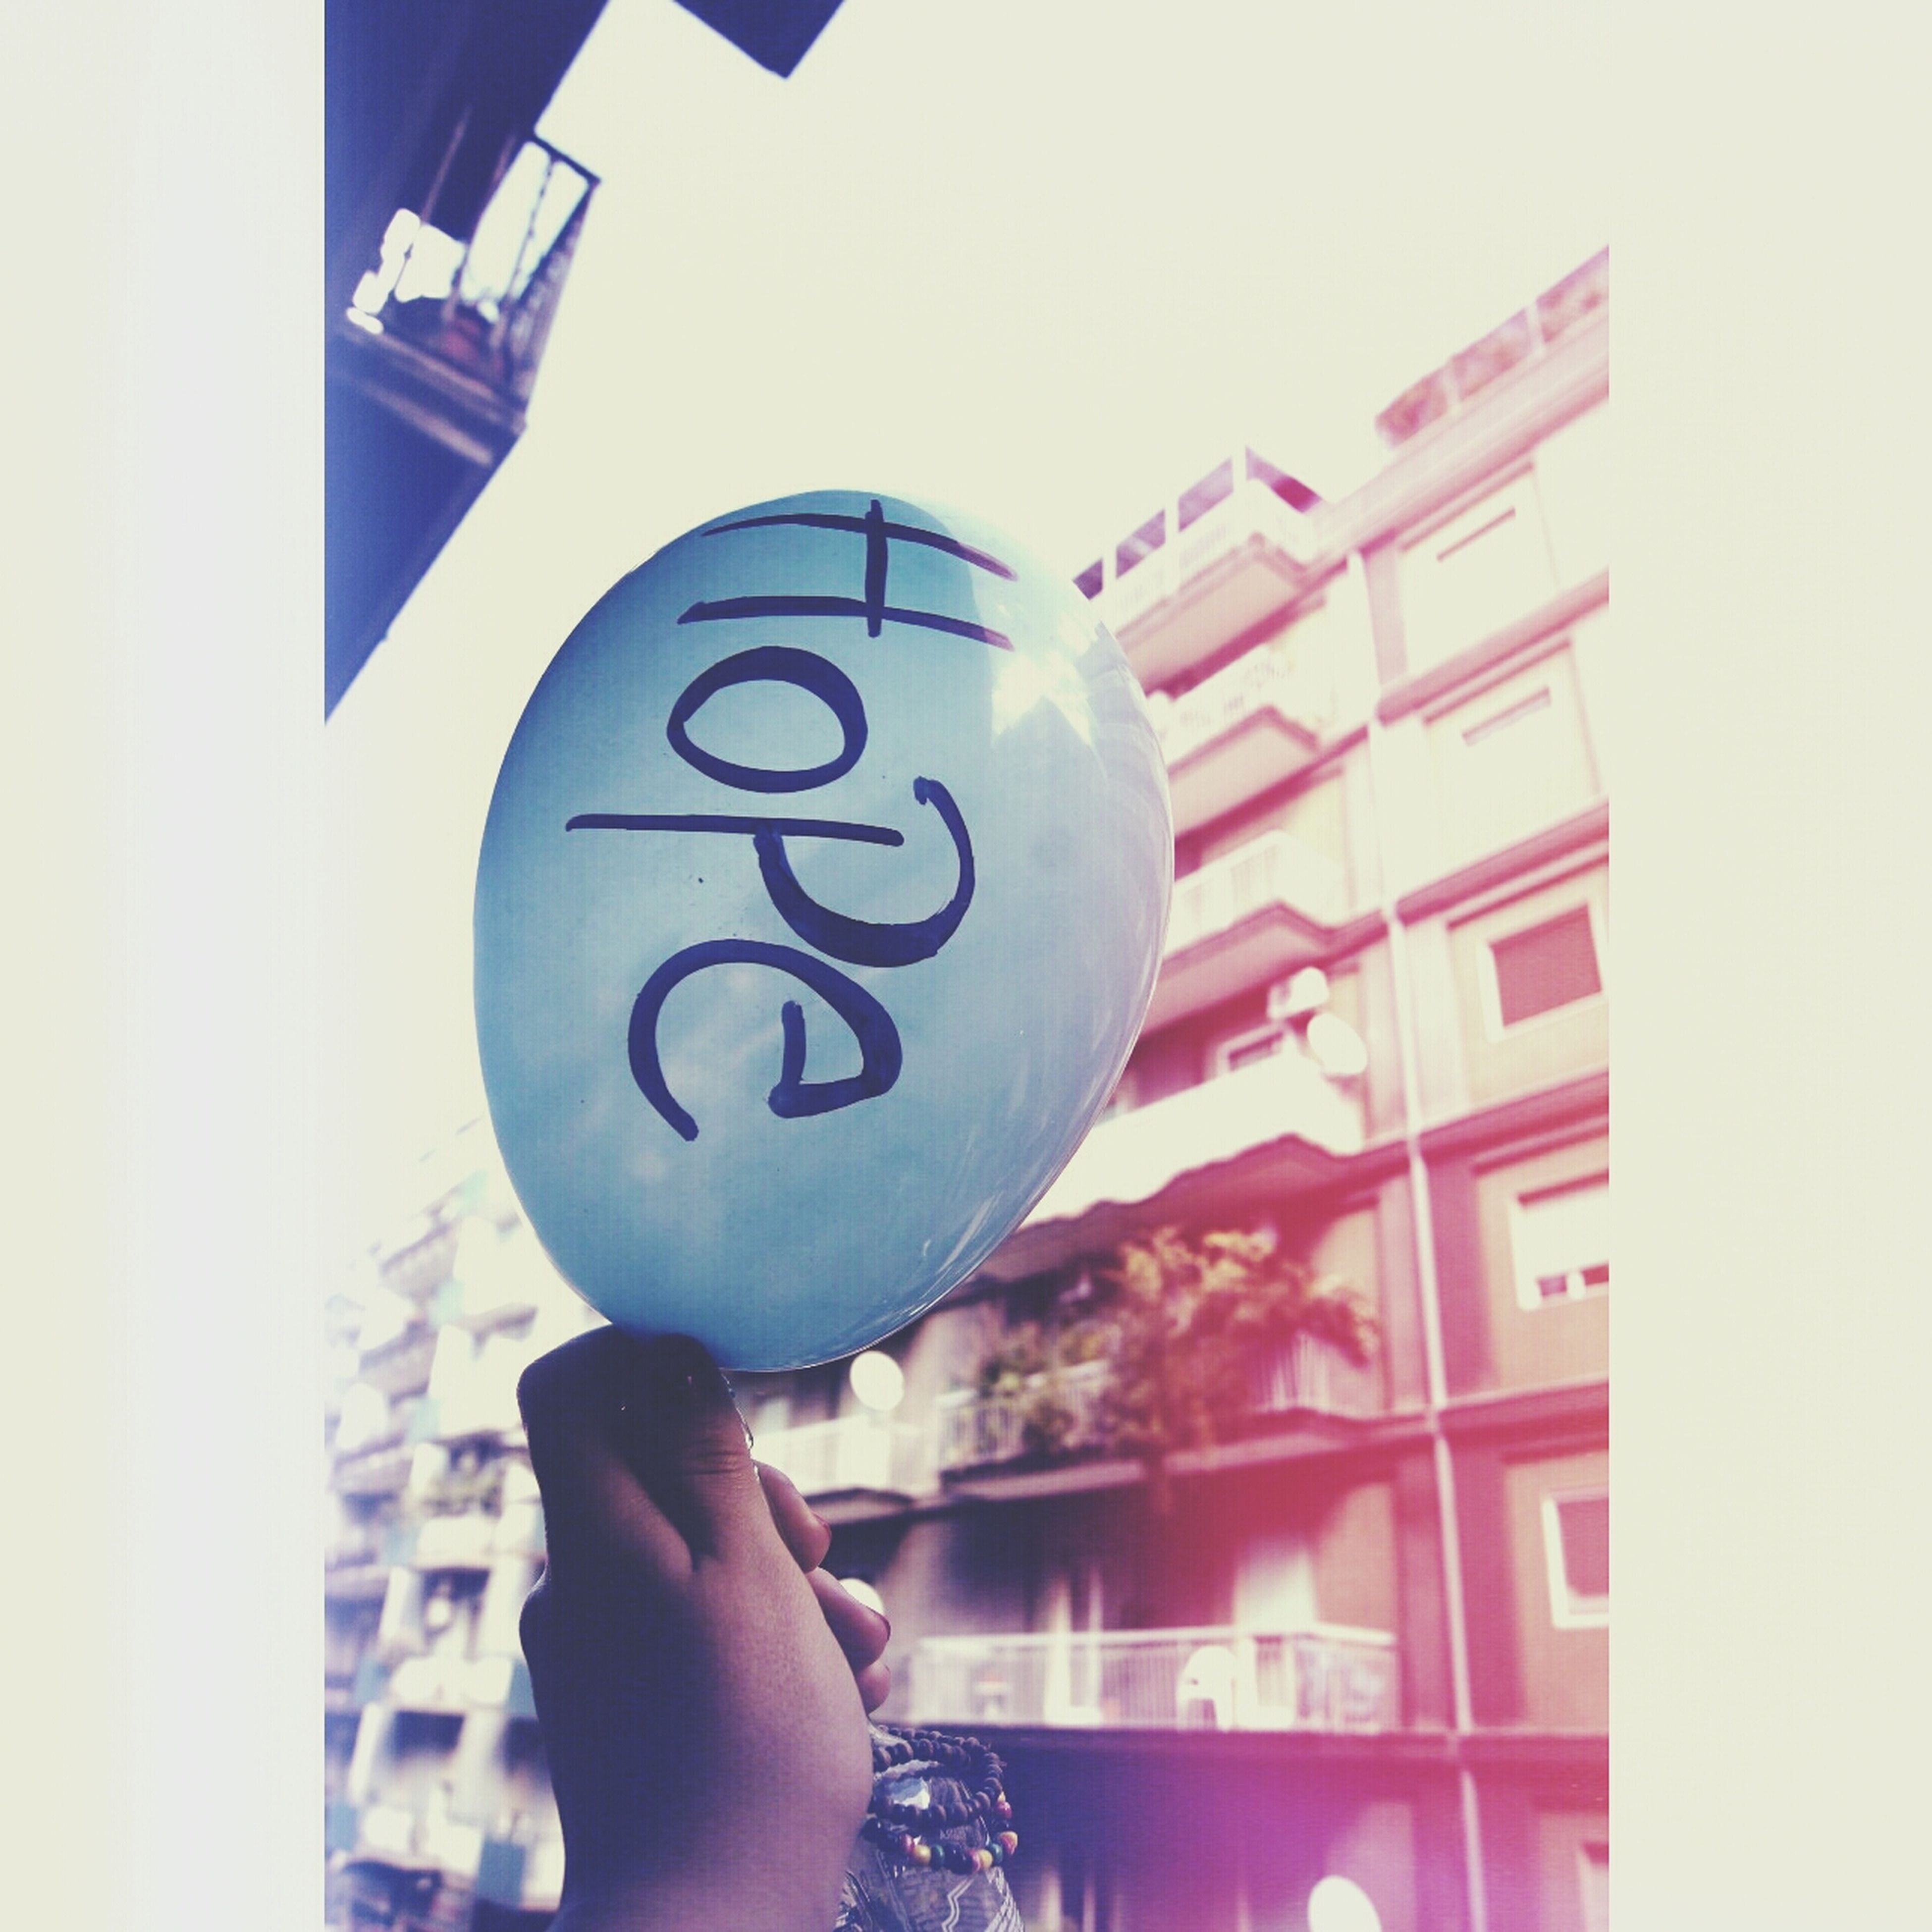 holding, lifestyles, text, communication, leisure activity, architecture, built structure, western script, person, balloon, building exterior, indoors, headshot, childhood, blue, low angle view, wall - building feature, sign